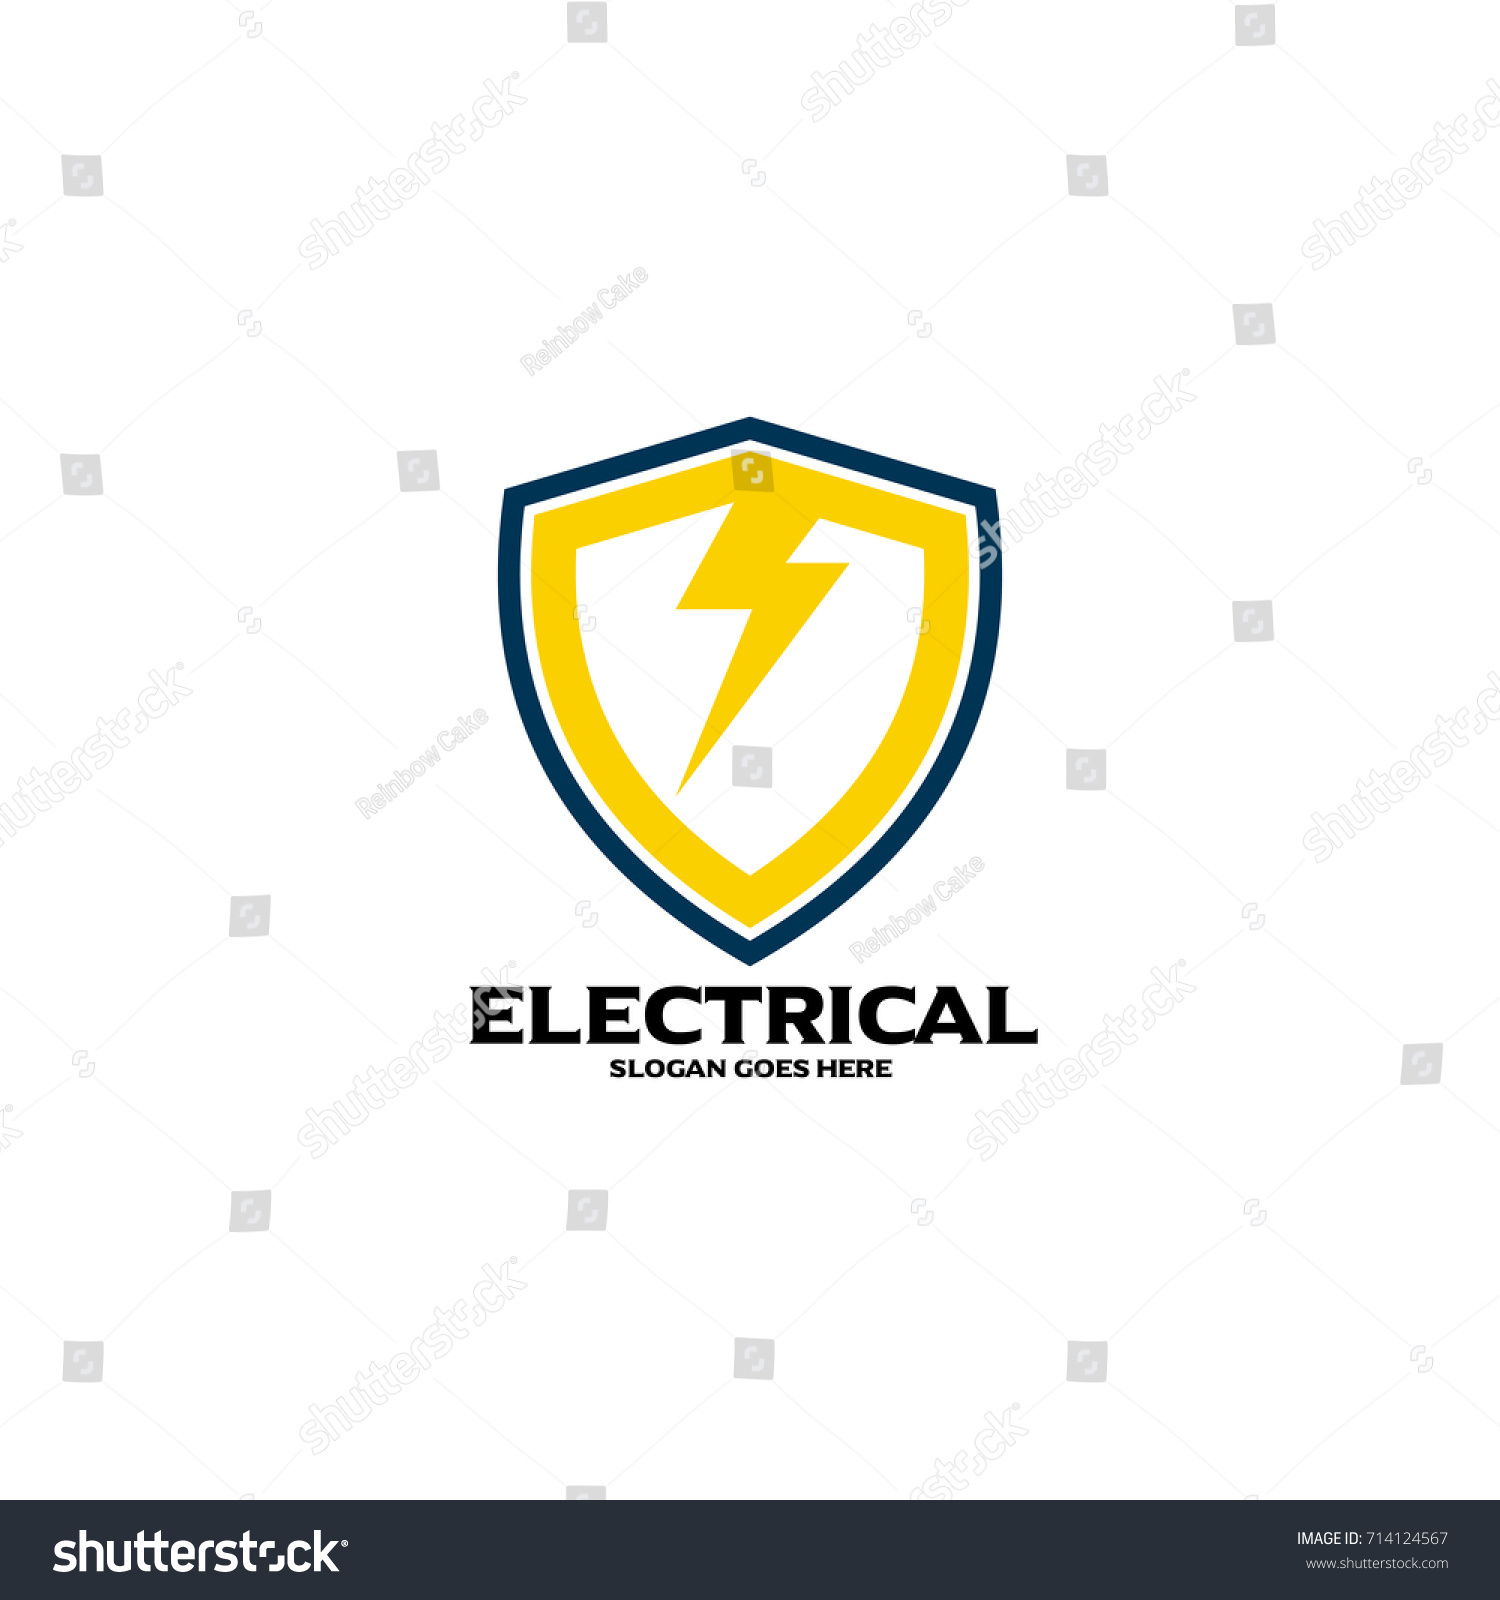 Electrical logo electrical mechanical business company stock vector electrical logo electrical and mechanical business company good for name card branding flyer colourmoves